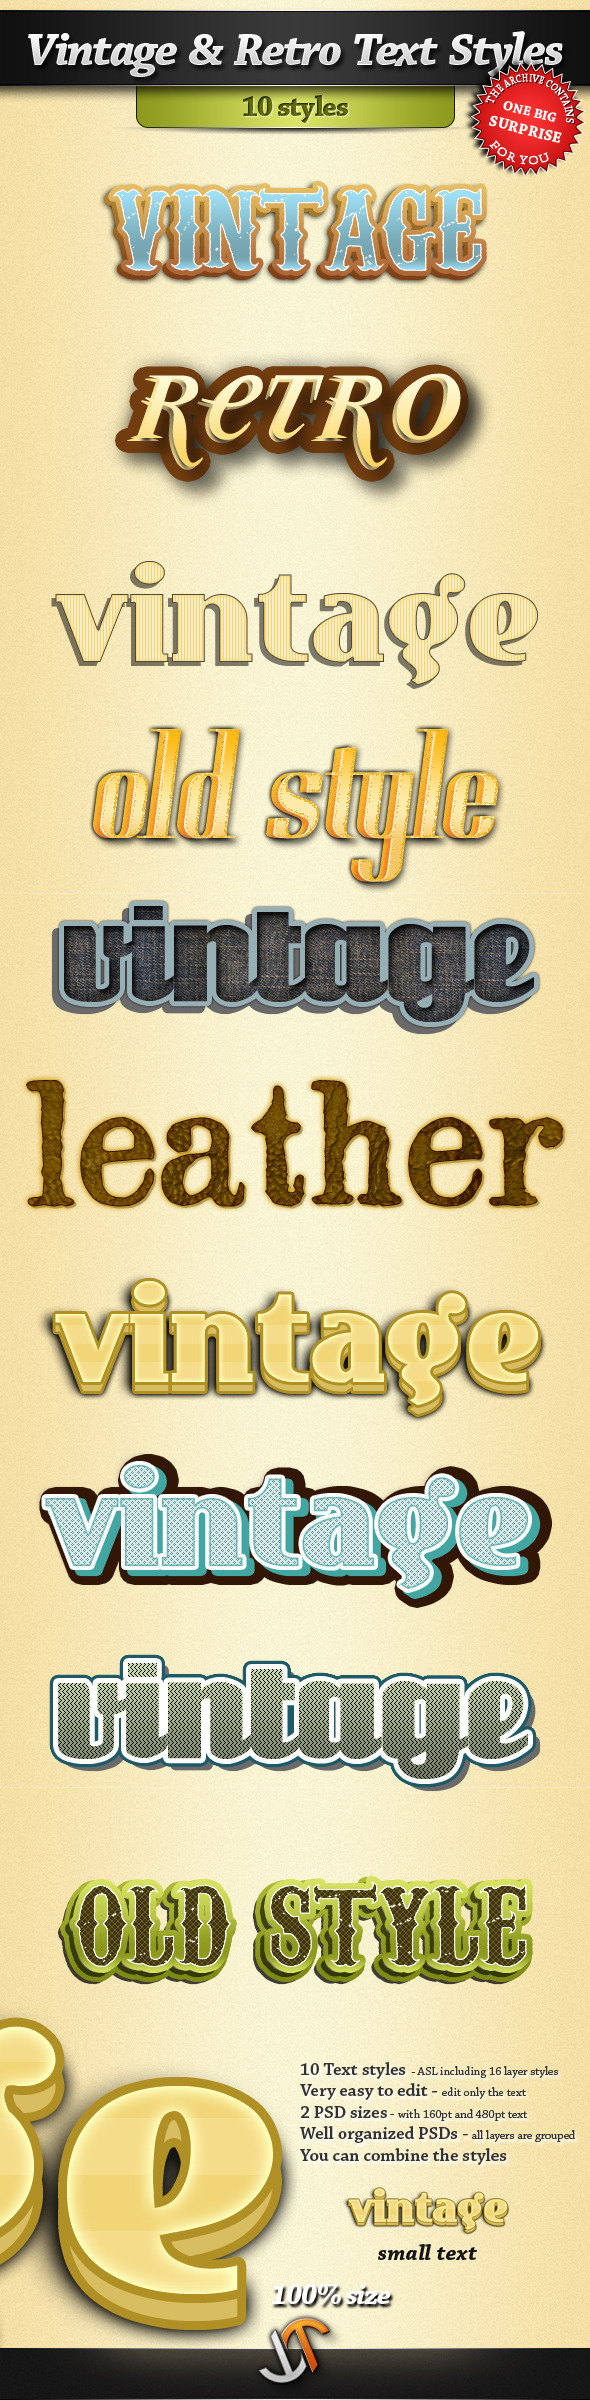 Vintage and Retro Text Styles - Text Effects Styles